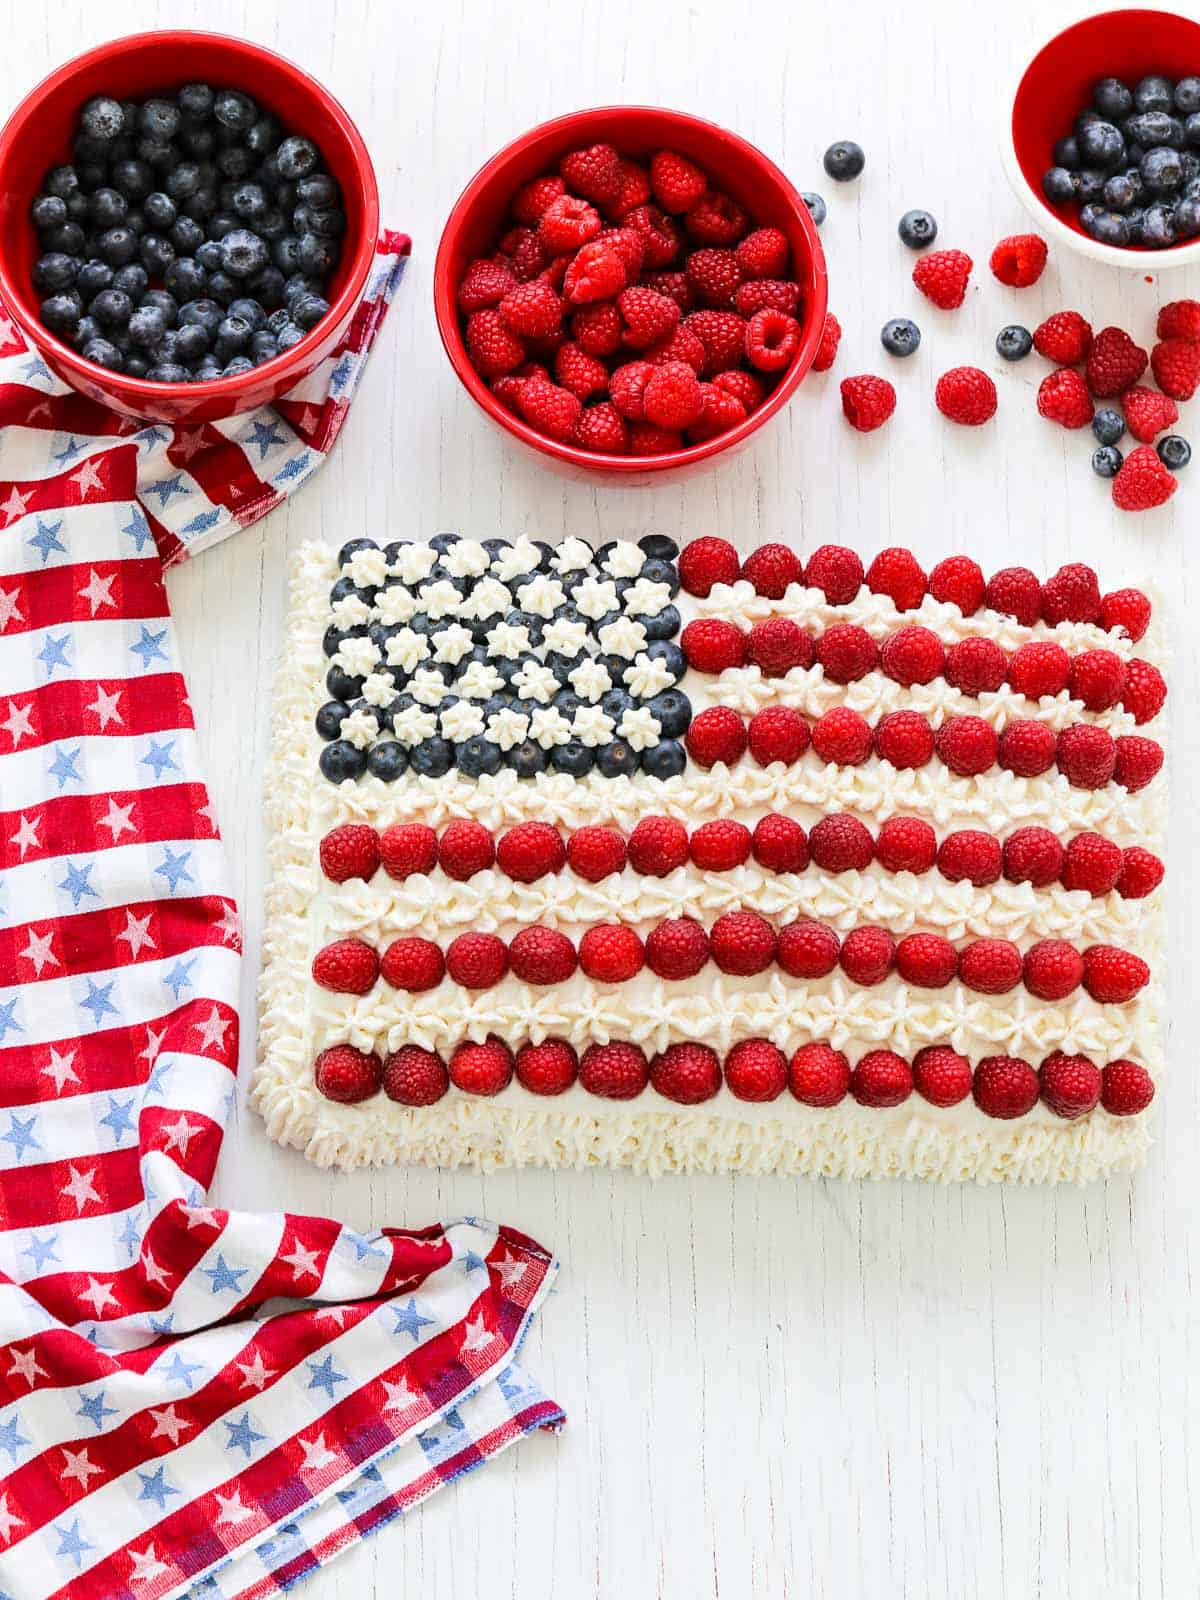 An American flag cake decorated with blueberries, raspberries, and white frosting with a patriotic star towel.